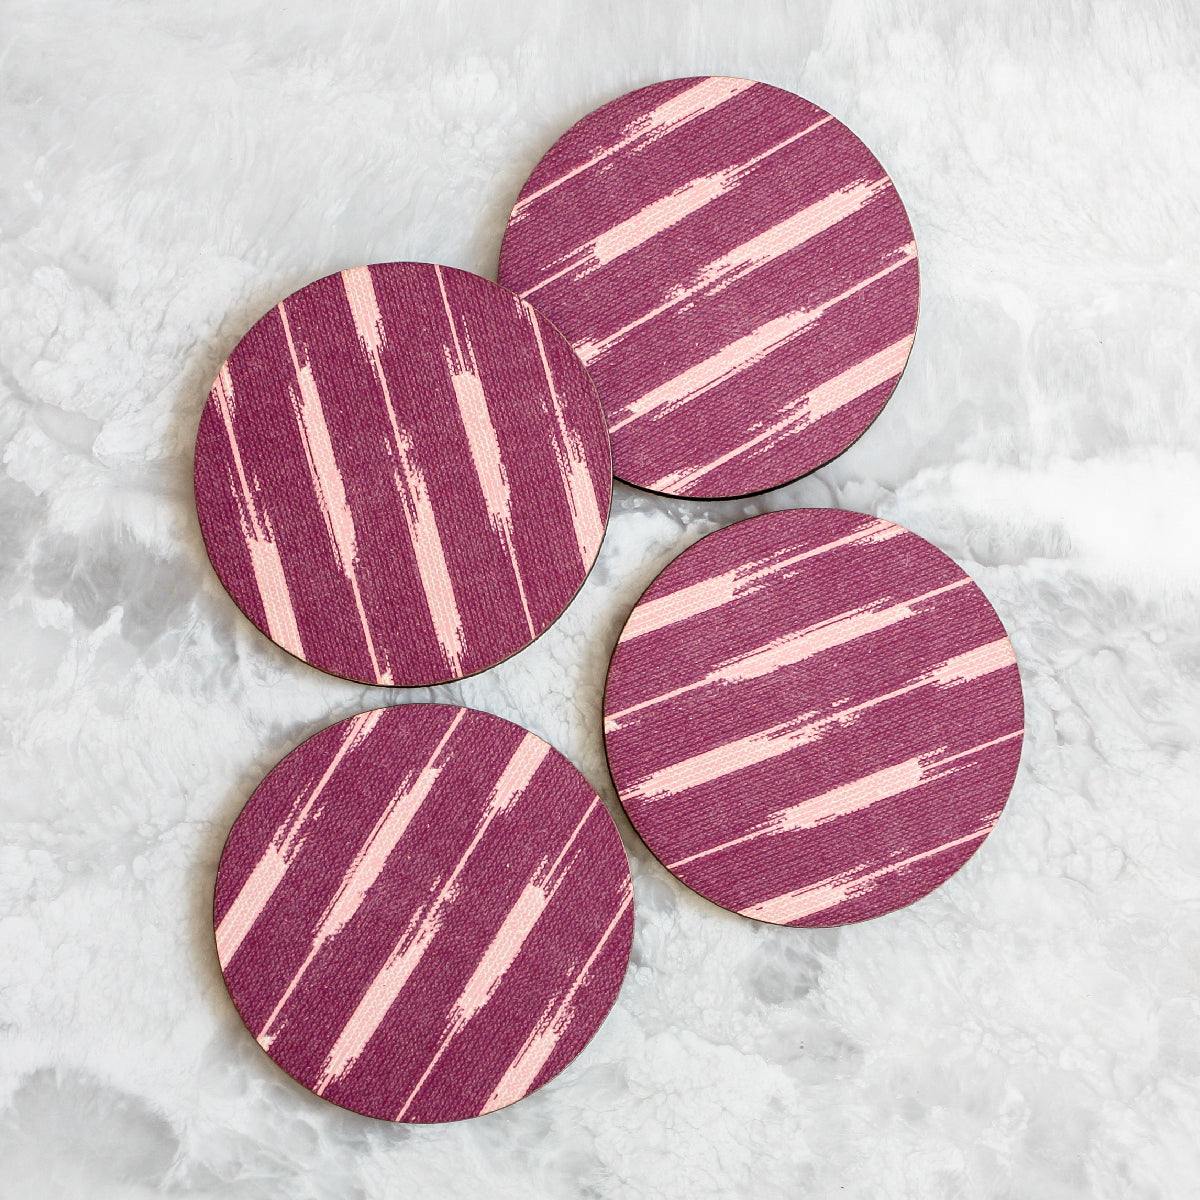 Ikat coasters made of cork and wood in purple by Tisch New York